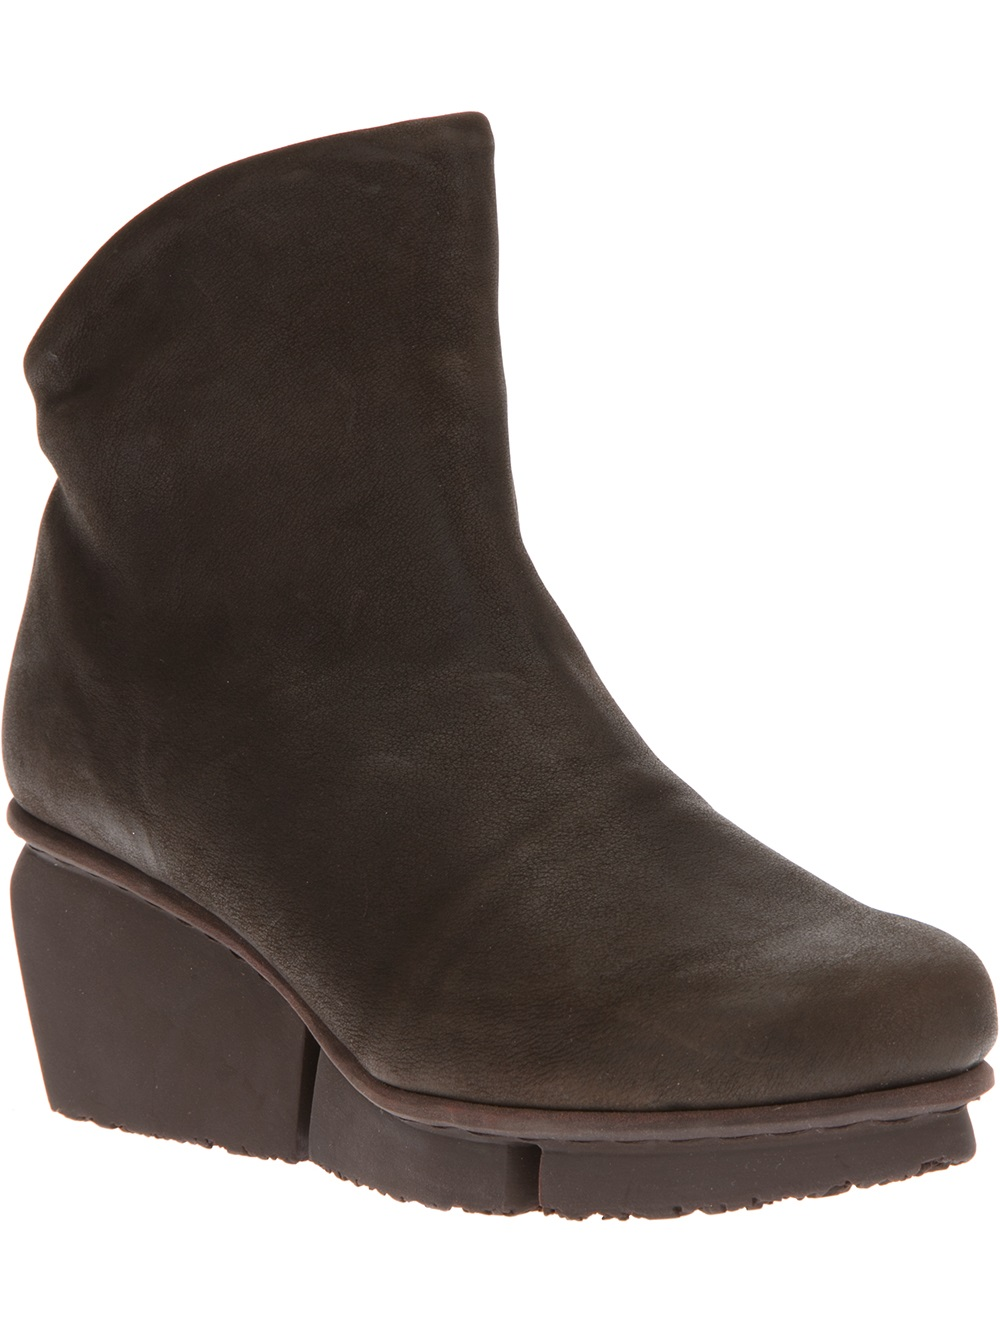 trippen wedge ankle boot in brown lyst